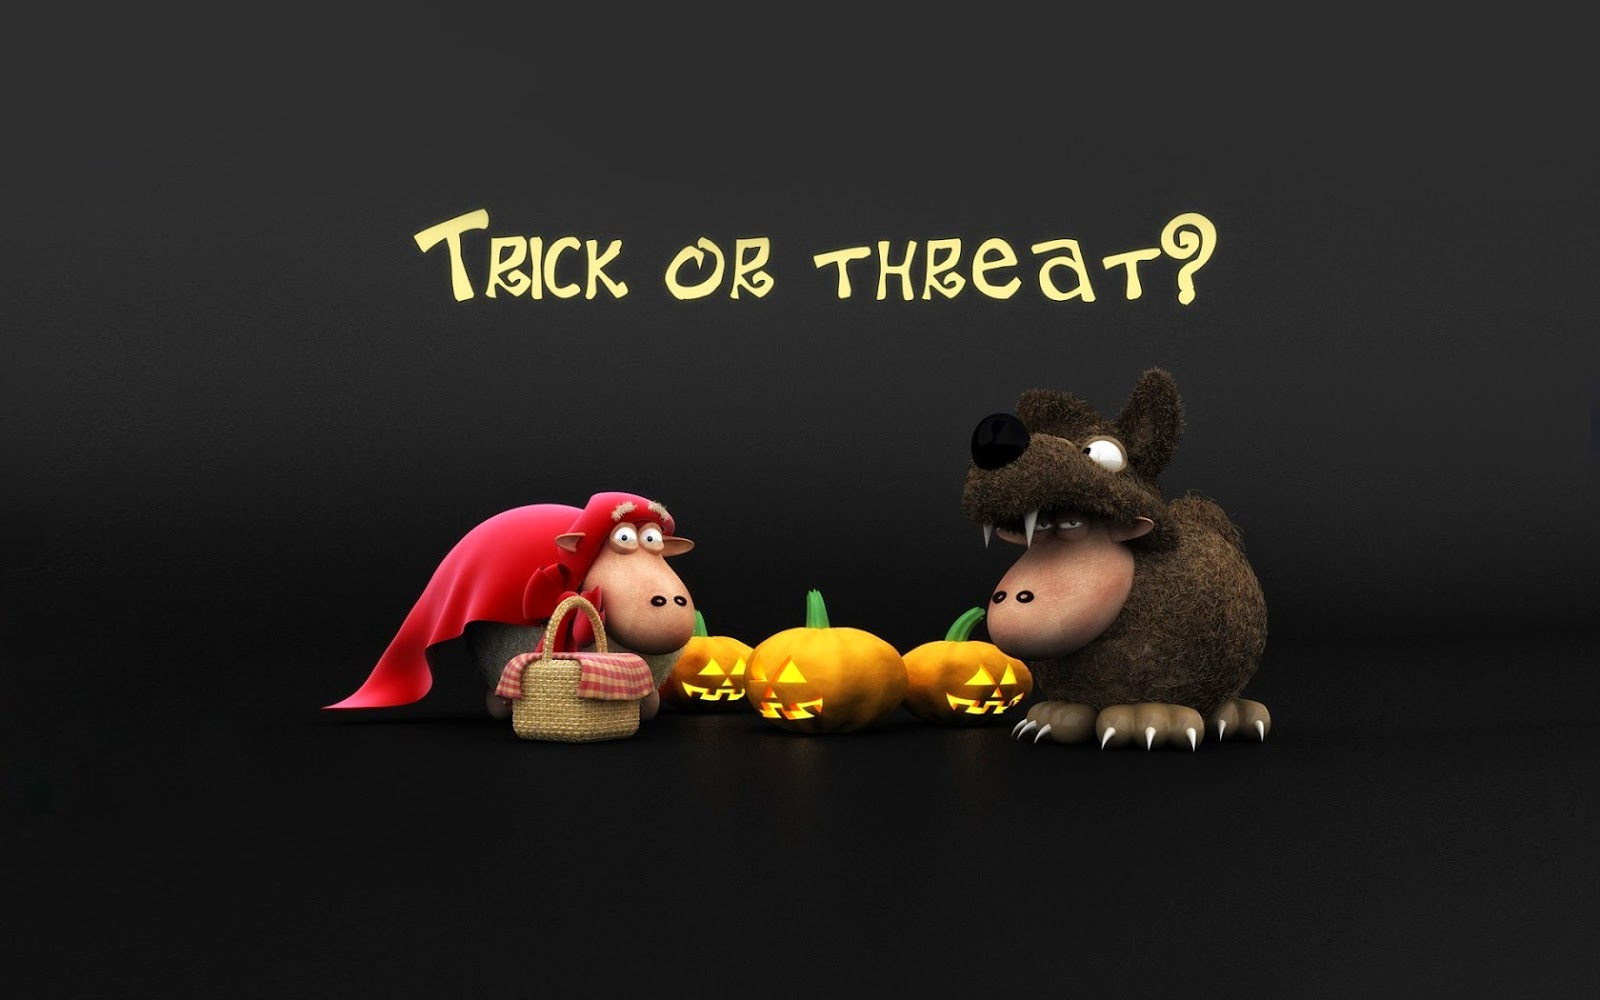 Trick-or-treat-halloween-holiday-game-wallpaper-for-kids-children.jpg